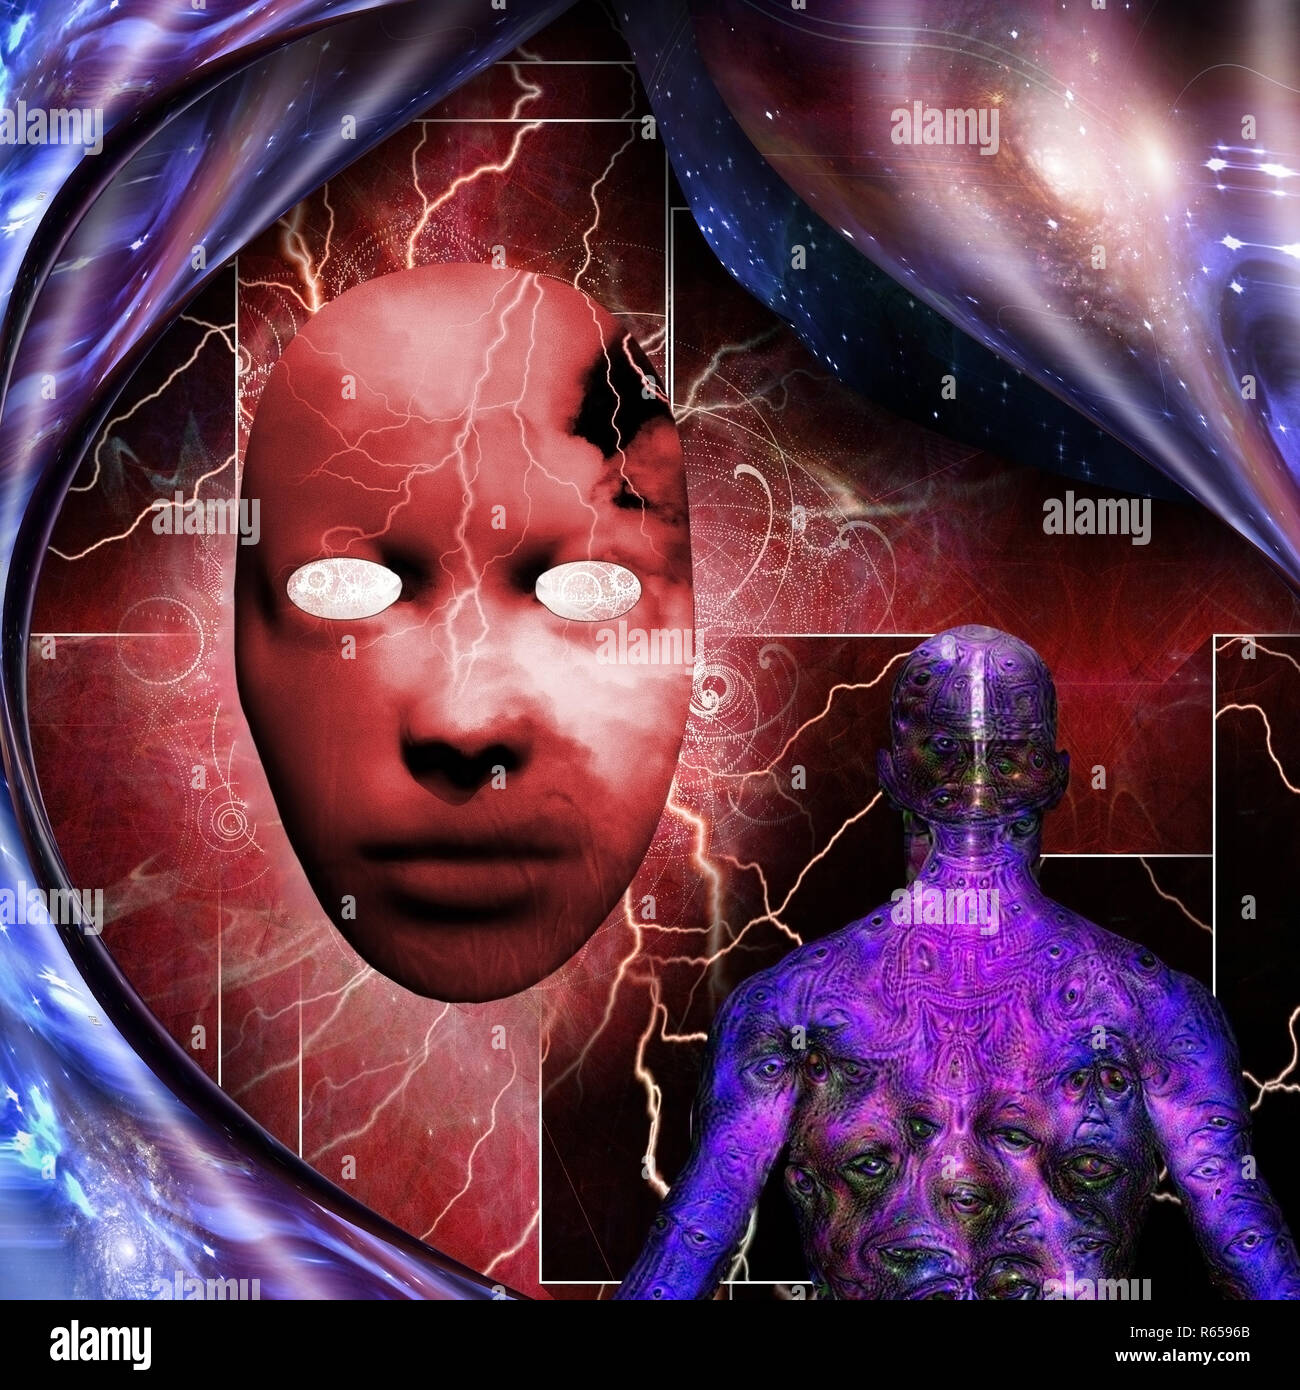 Surrealism. Mystic mask with lightnings. Man with weird demonic eyes on skin. Warped space. Stock Photo